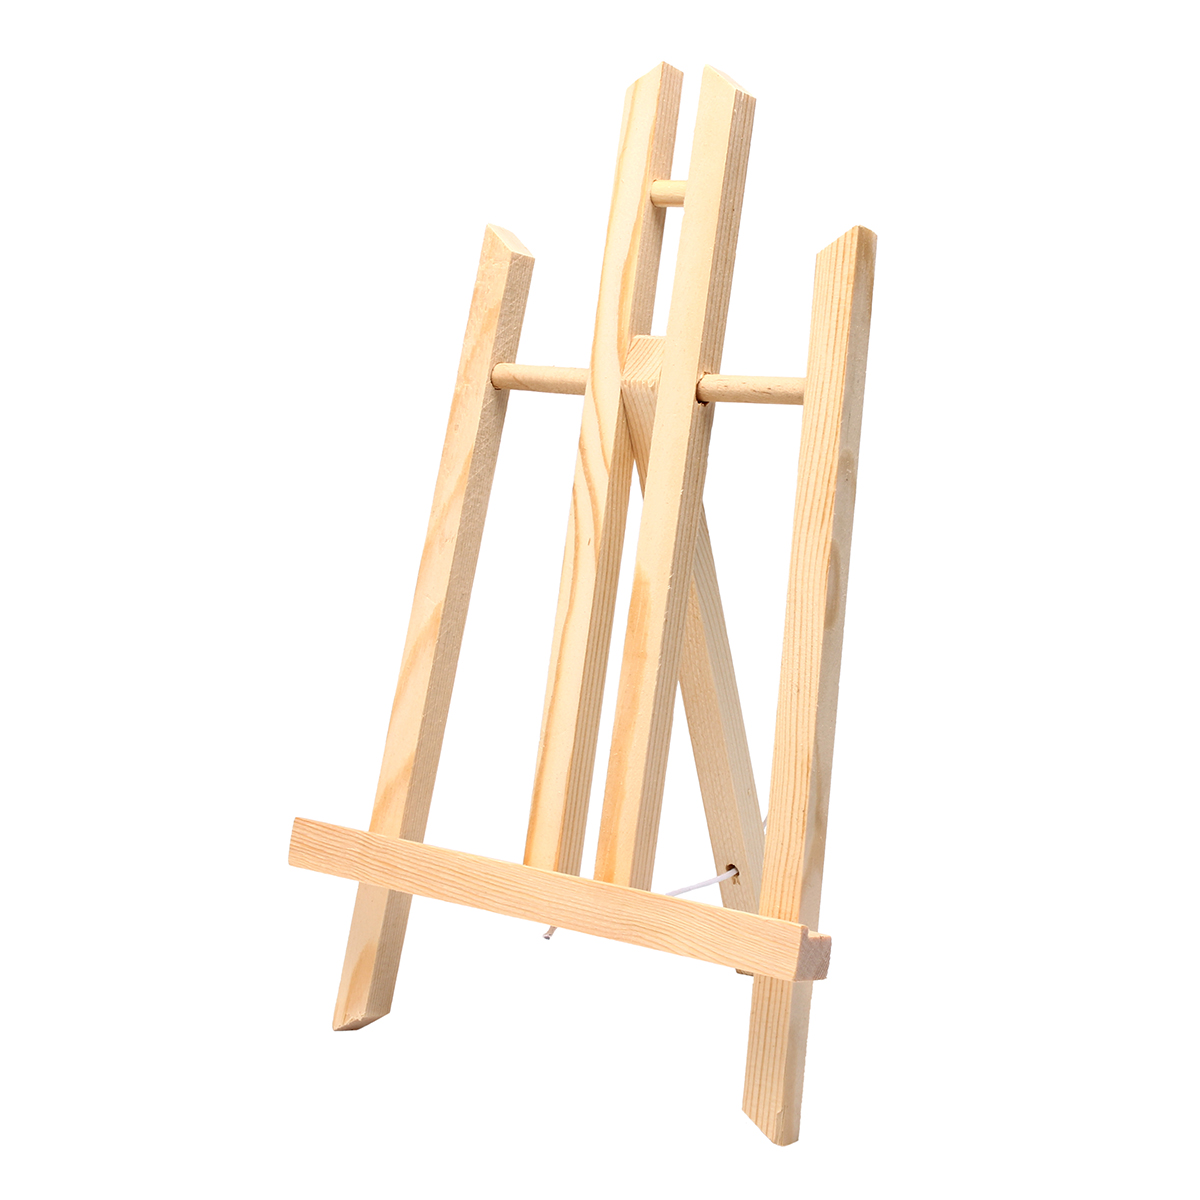 Durable Wood Wooden Easels Display Tripod Art Artist Painting Stand Paint Rack